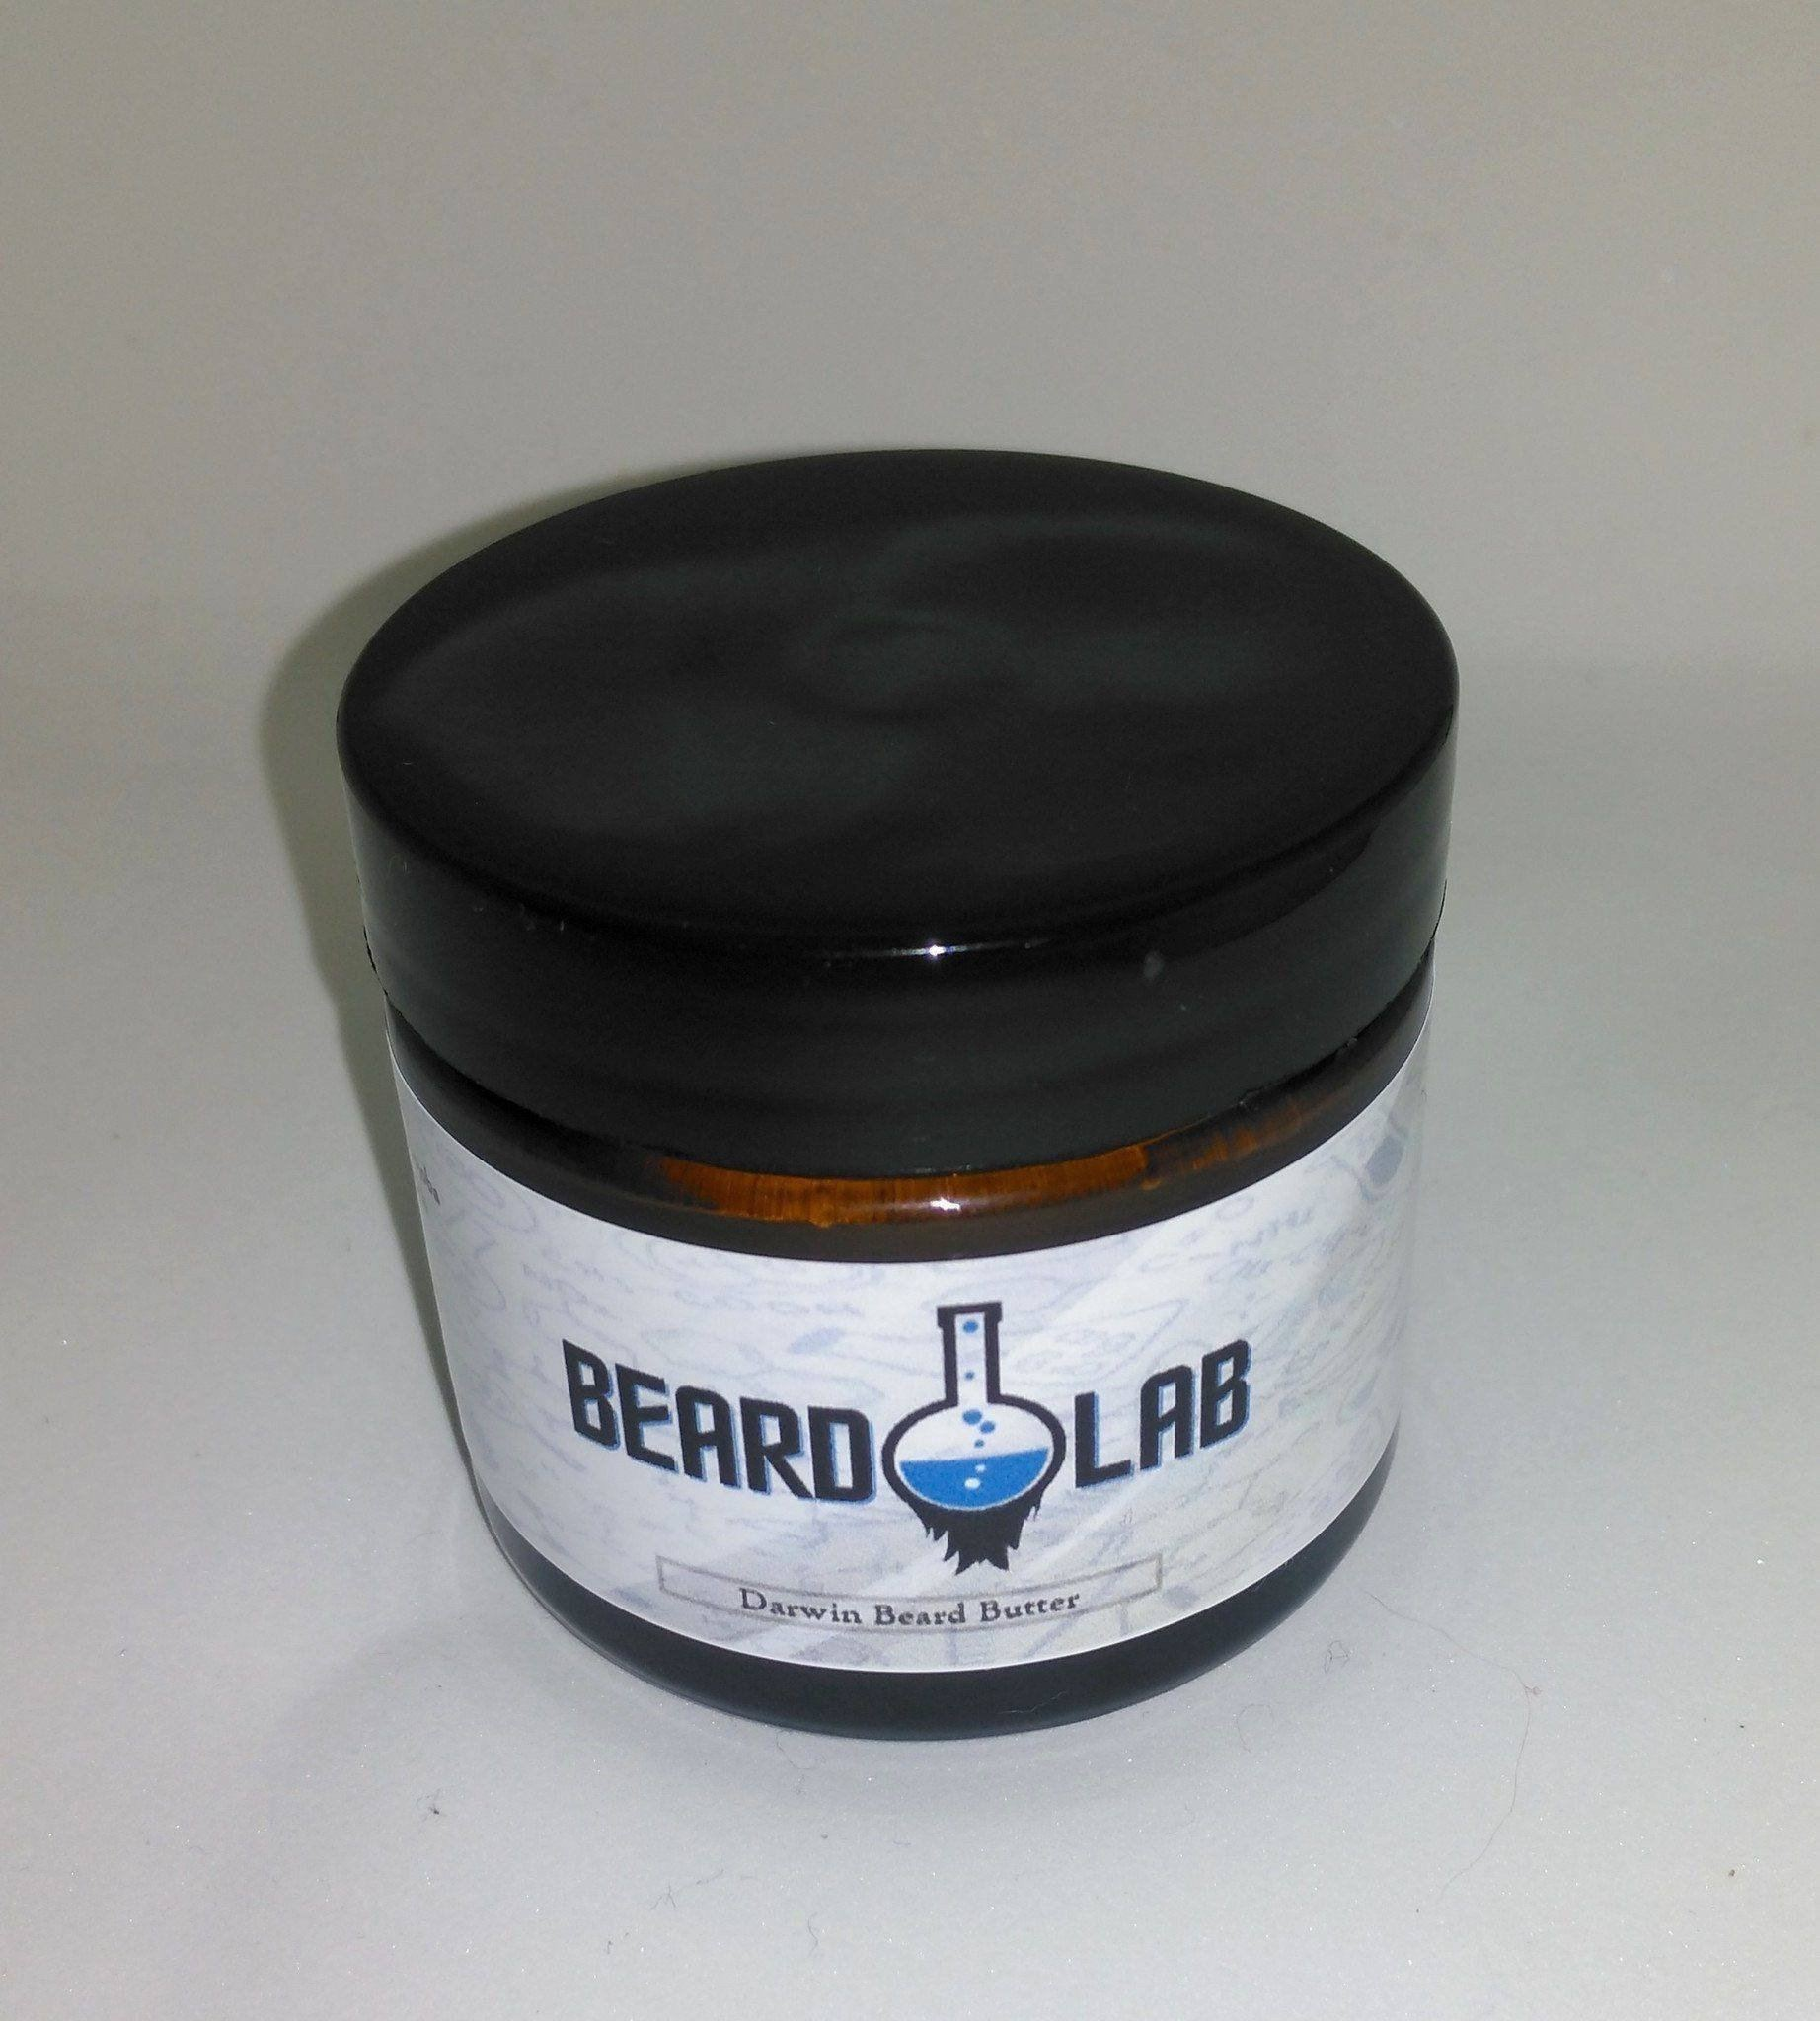 Beard Care - Darwin Beard Butter 50g